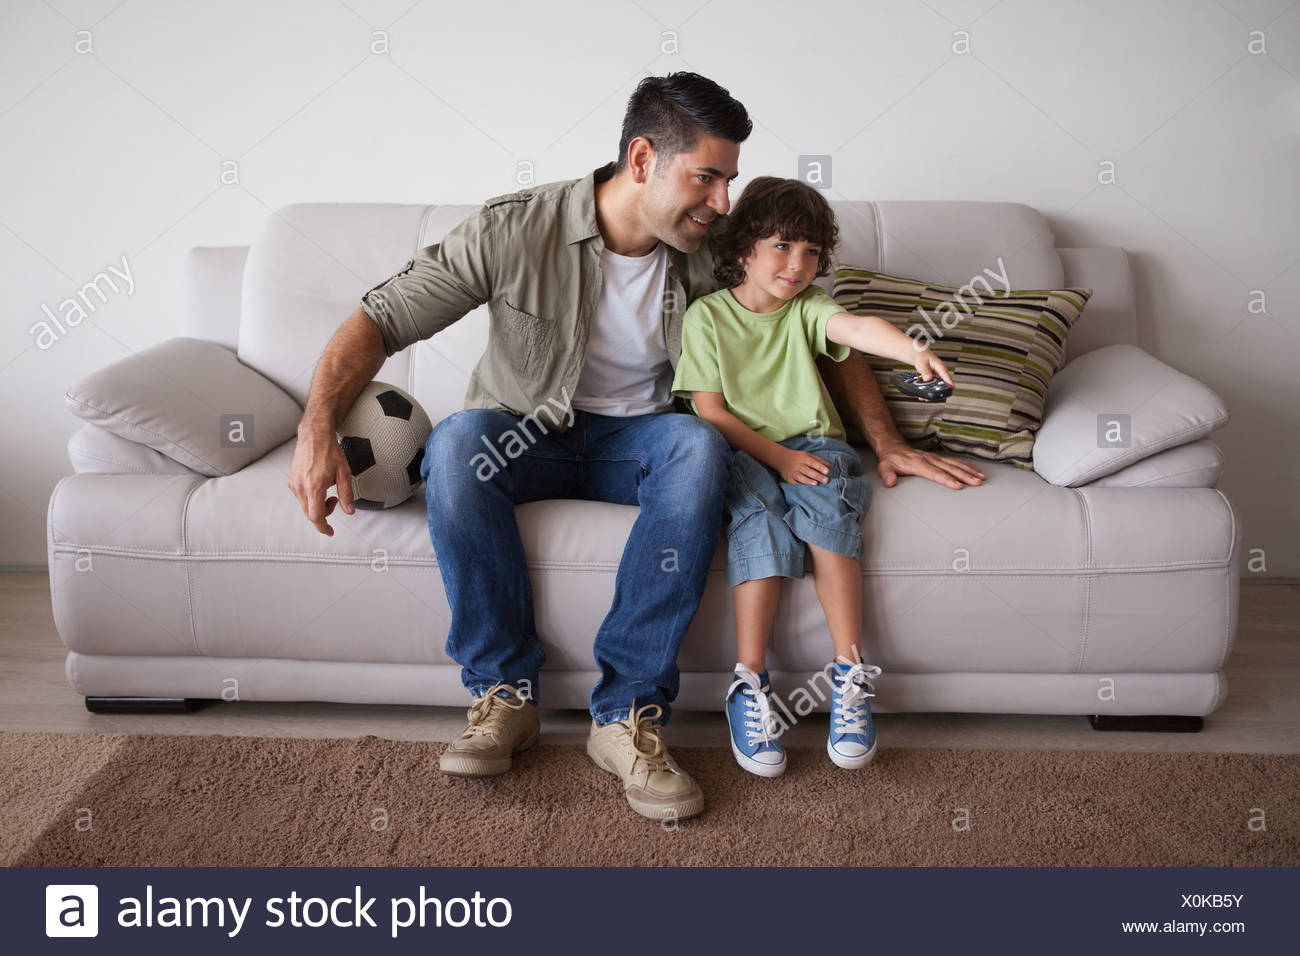 Congratulate, excellent Nn amateur on couch something is